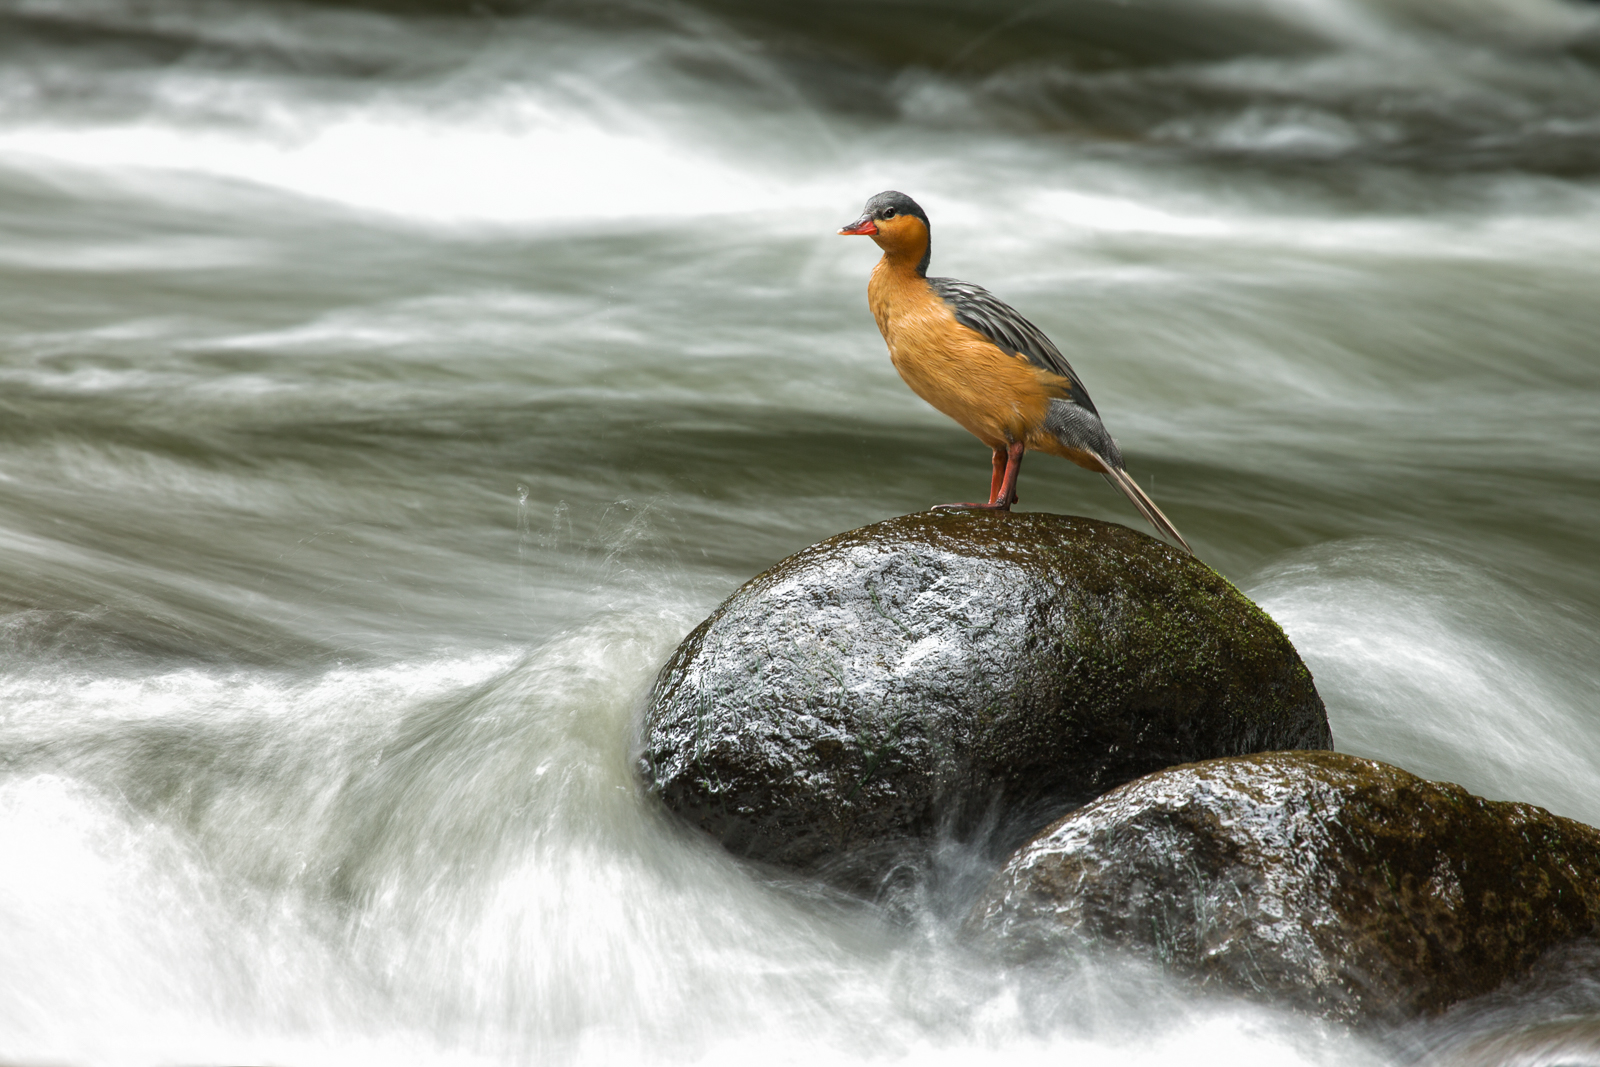 Torrent duck (Merganetta armata) female resting on a rock at Pereira, Colombia